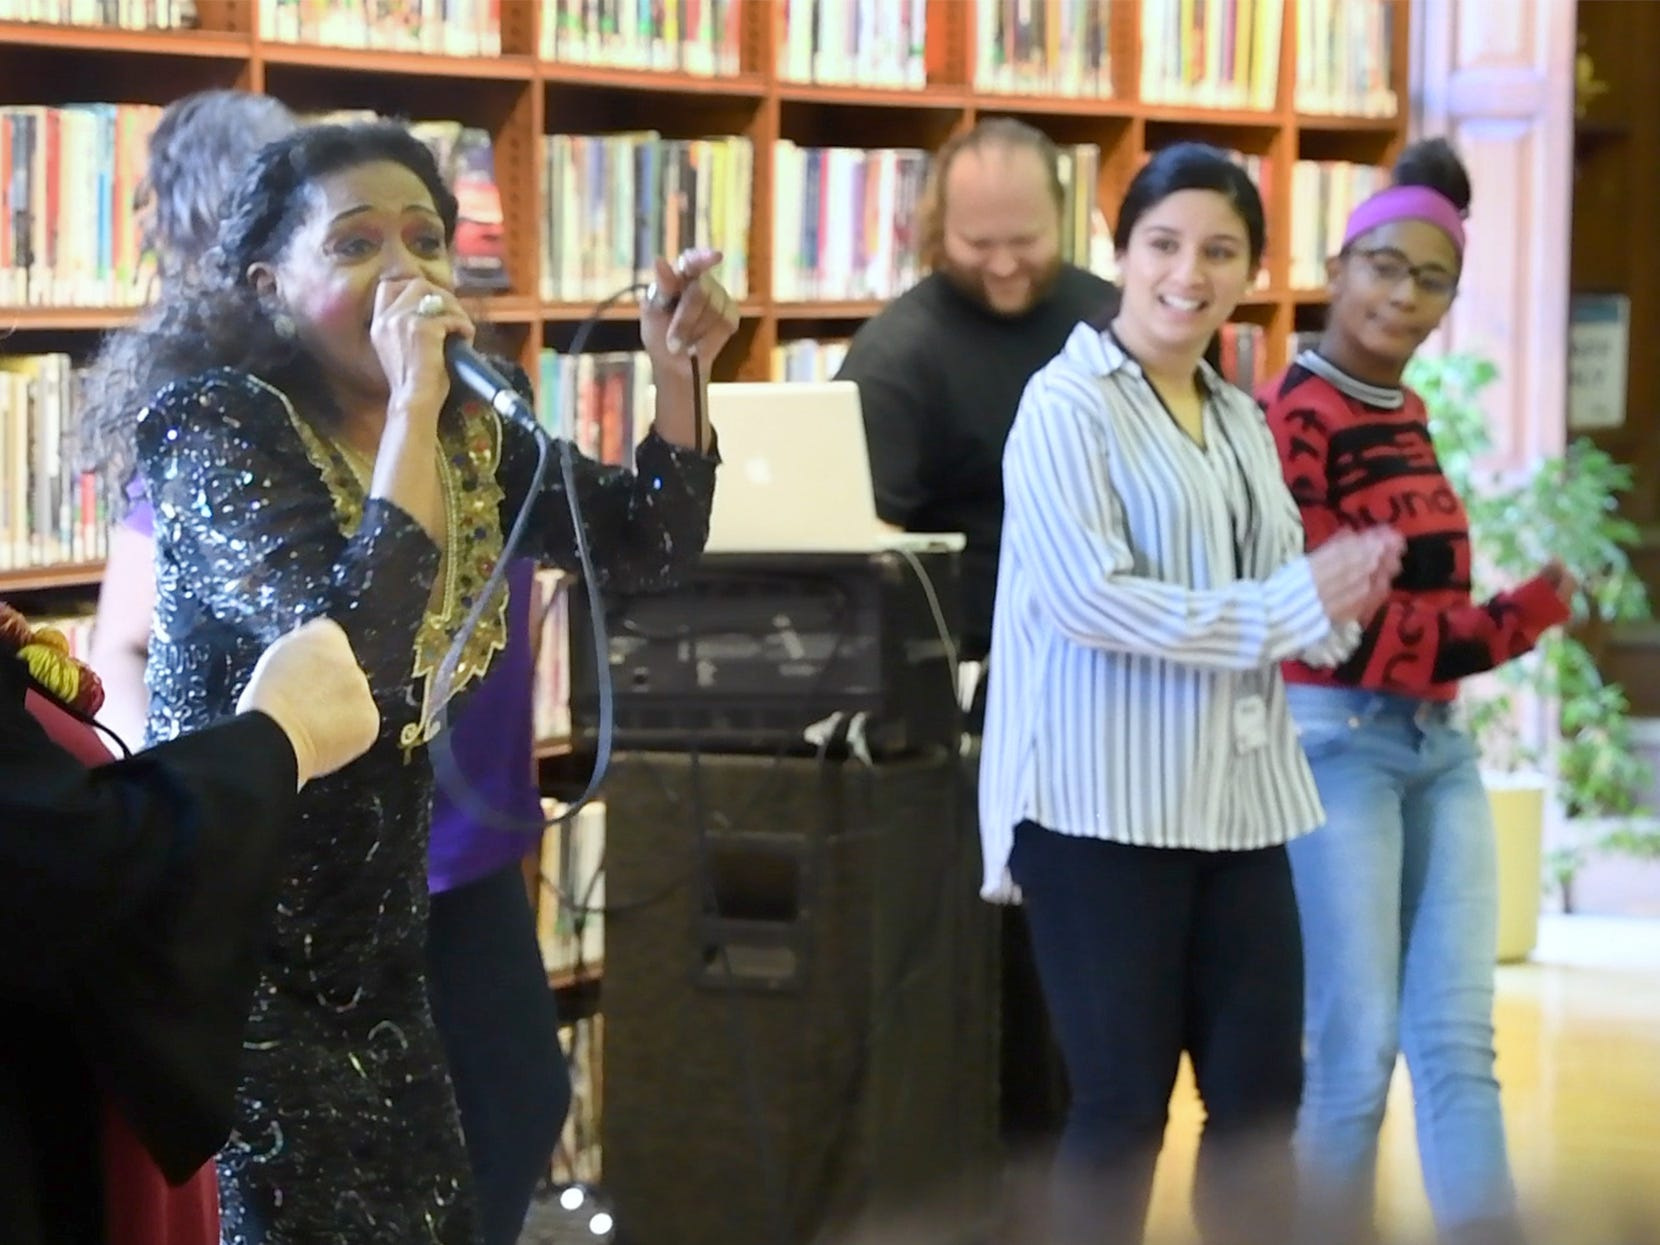 Vanda Guzman pulls people to the stage during a free concert at Martin Library on Sunday.